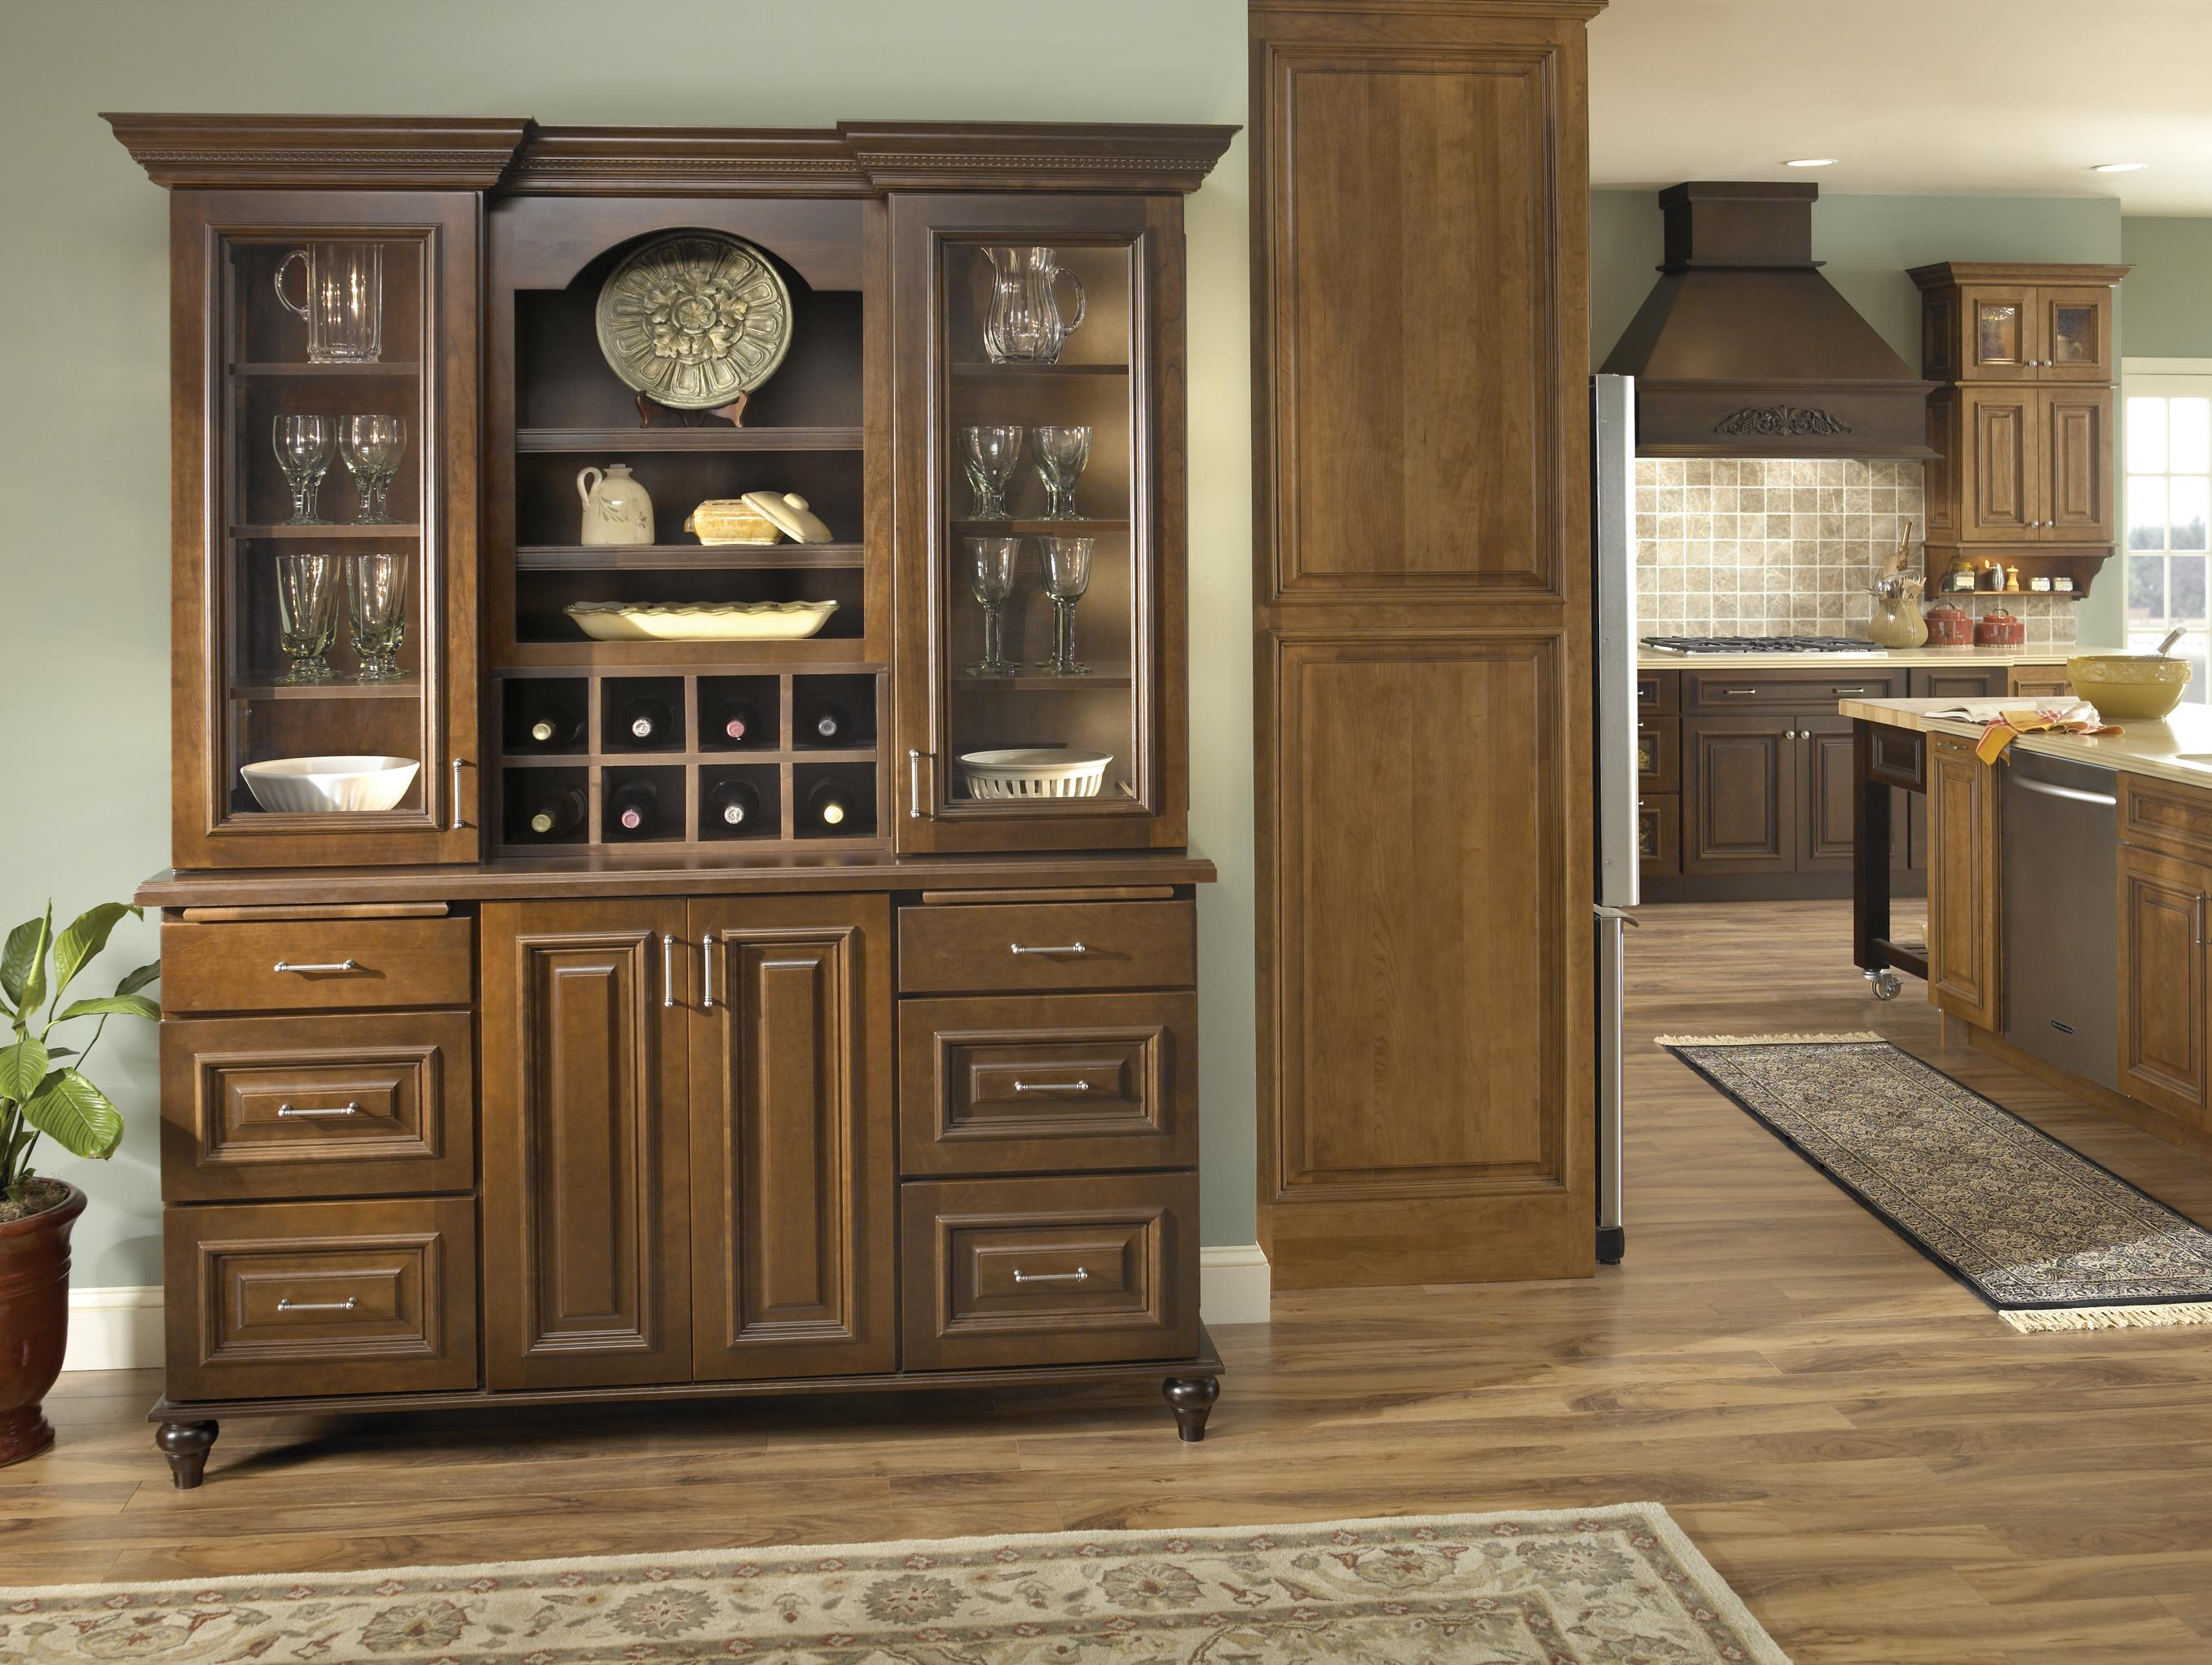 Thornberry Schuler Cabinetry At Lowes